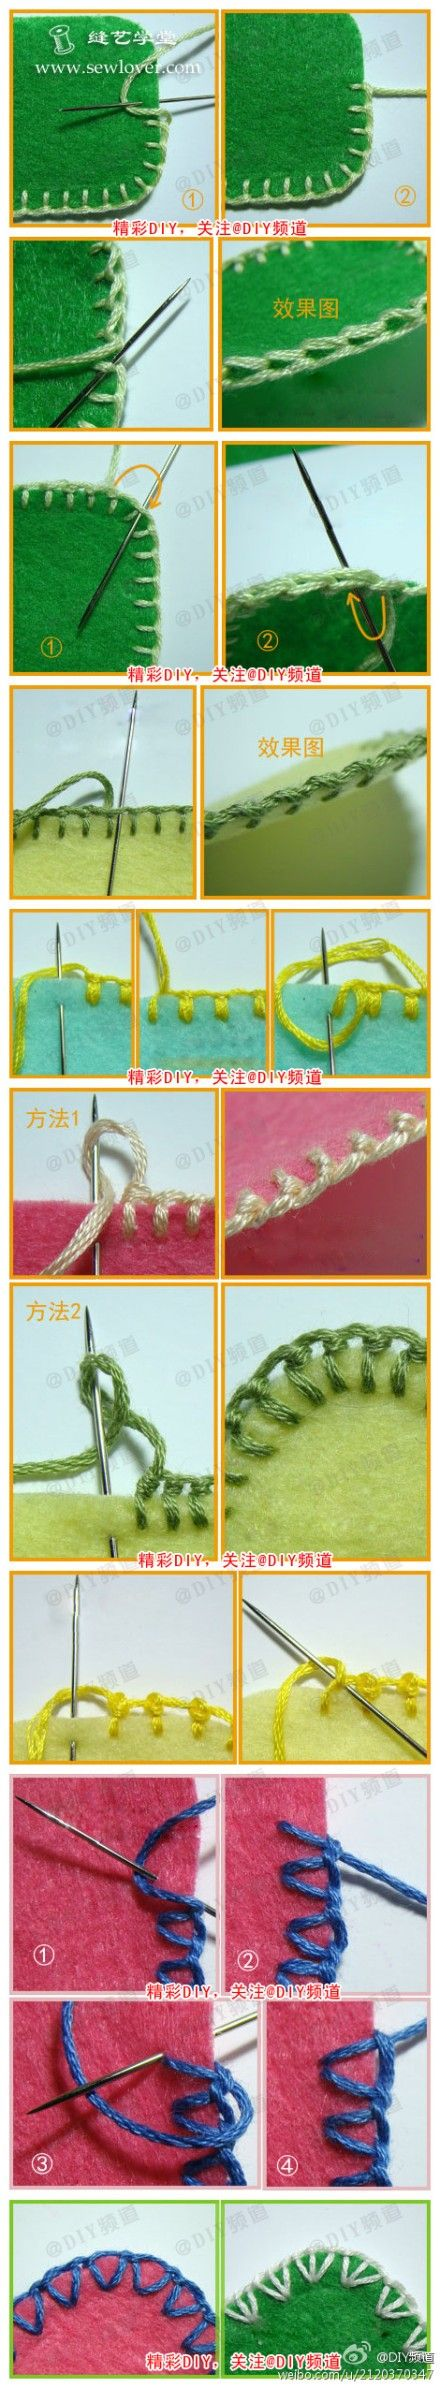 VARIETY OF BLANKET STITCHED EDGINGS. Great foundation for crochet edging. Written in Chinese but illustrations are quite explanatory.